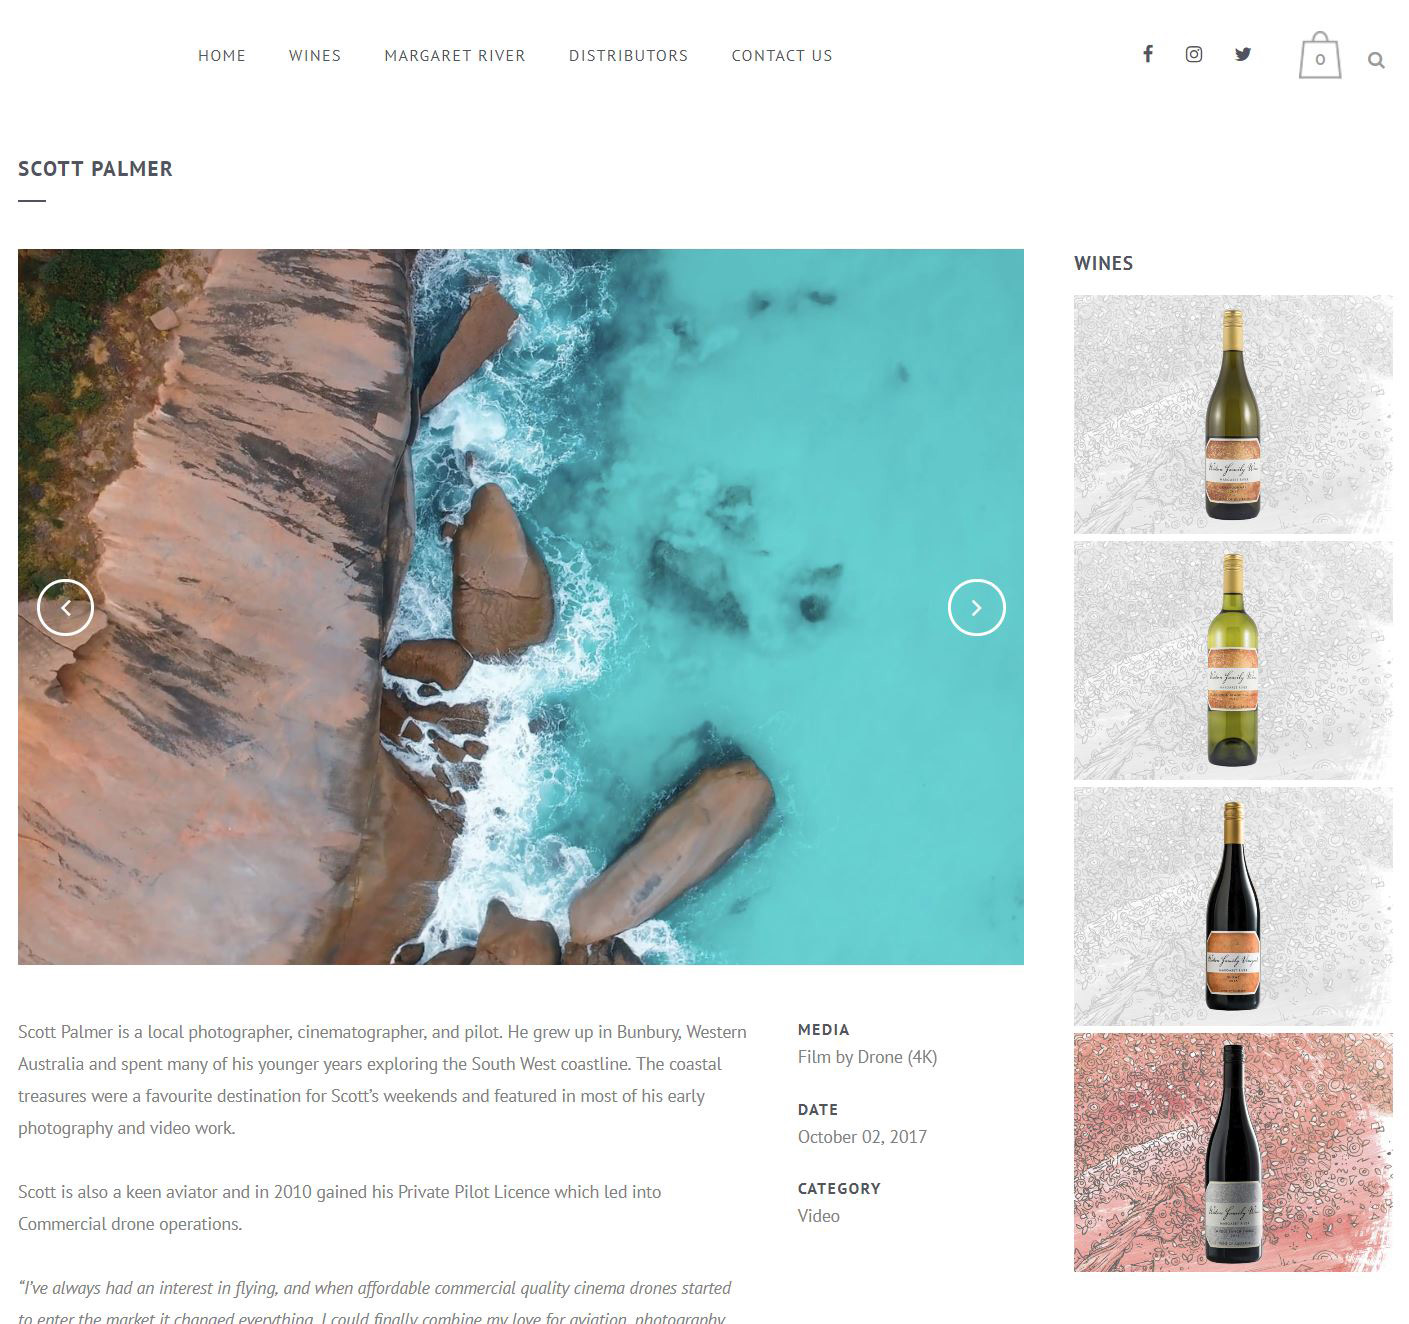 http://cdn.droneimage.com.au/wp-content/uploads/2019/07/watson-family-wines-features-drone-image-western-australia-drone-photography-tv-cinematograhy-commercial-WA-Perth.jpg?x43638